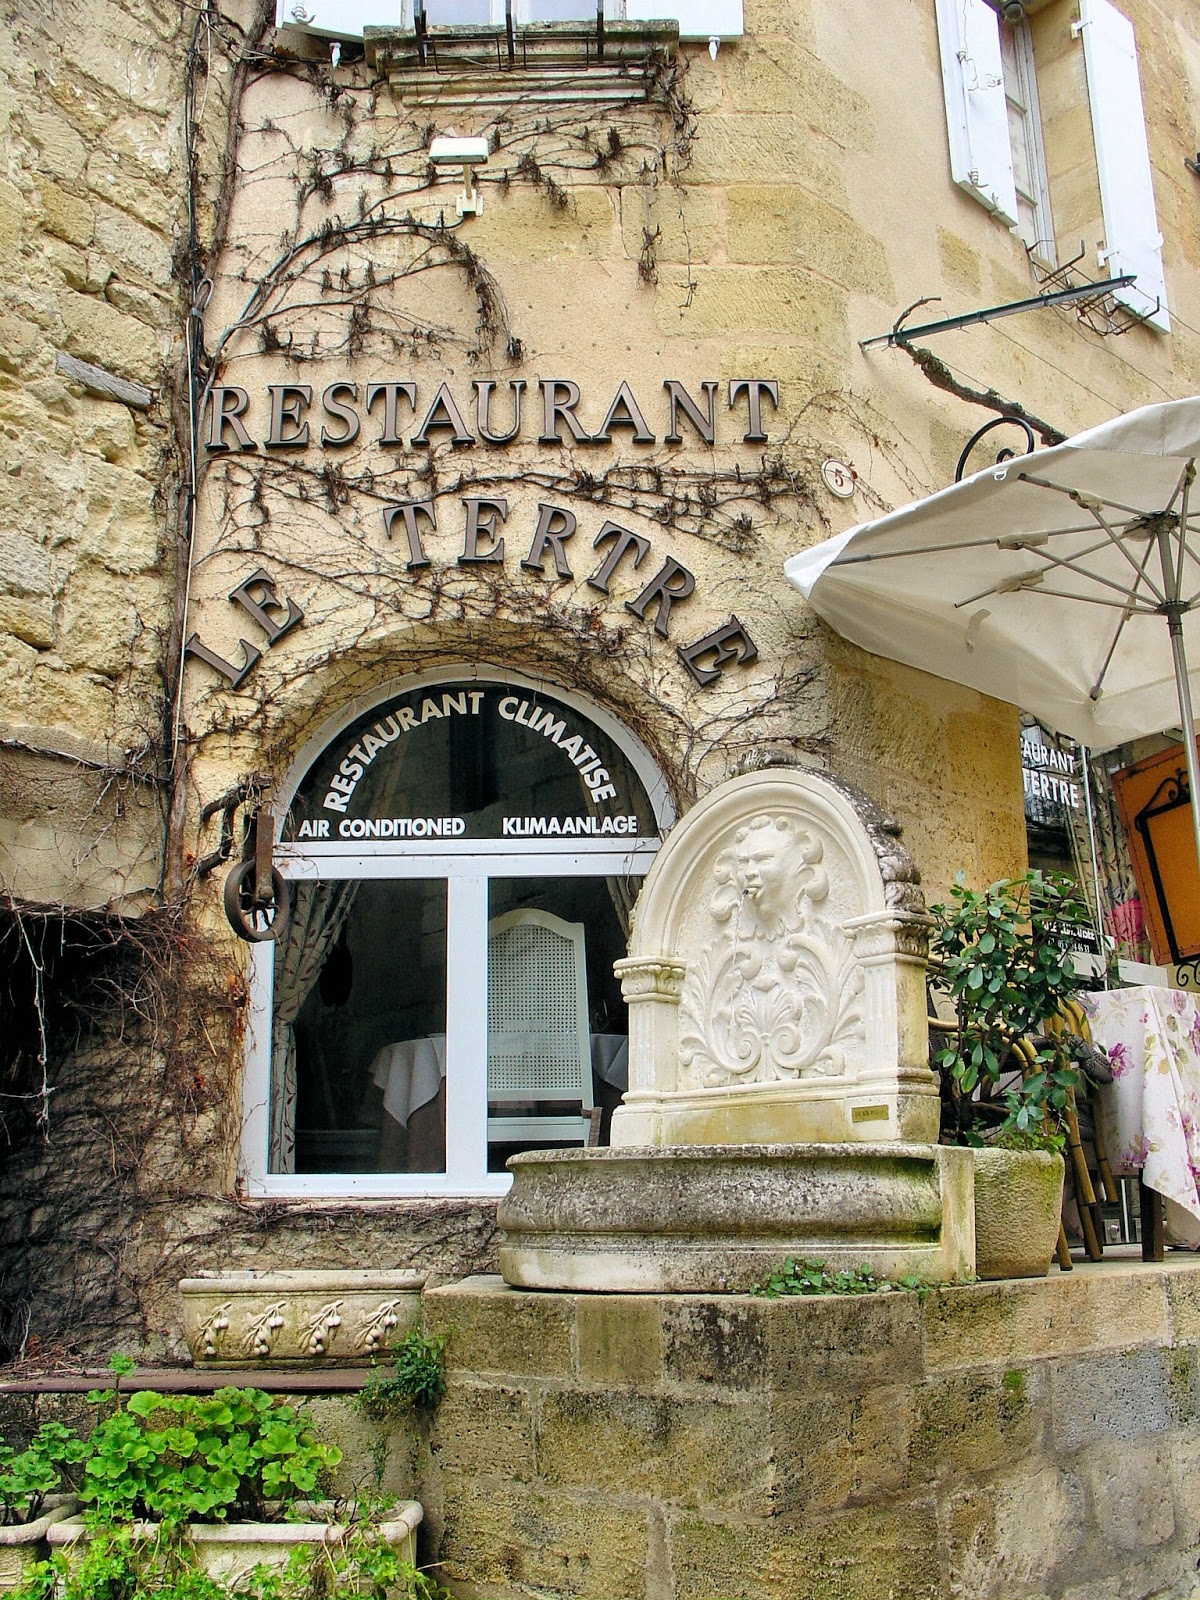 Restaurant Le Tertre. Who wouldn't want to eat here?